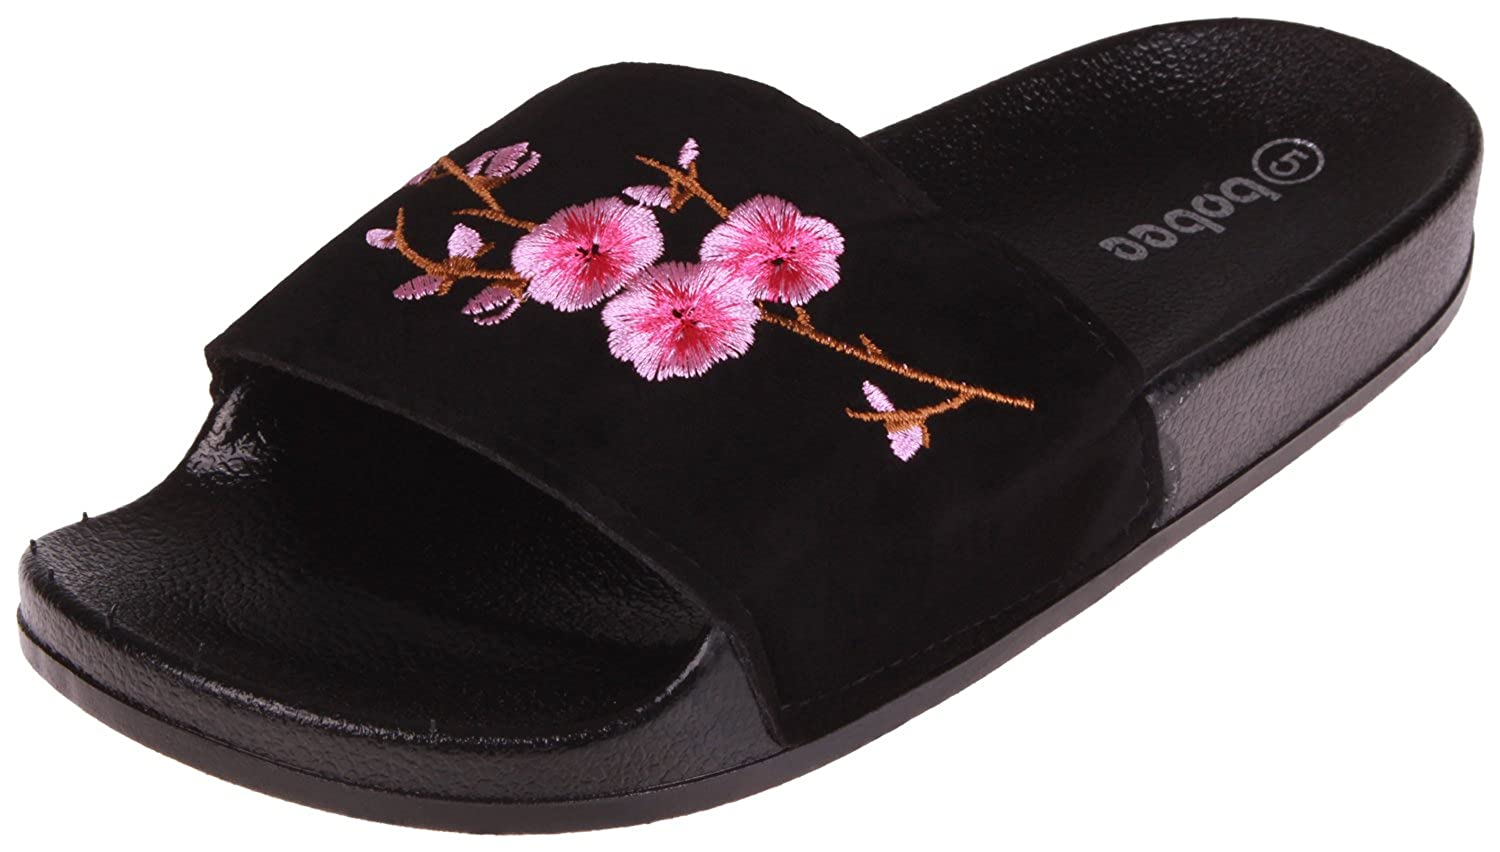 Enimay Womens Slide Sandals Slip on Outdoor Indoor Floral Slippers Black Size 10